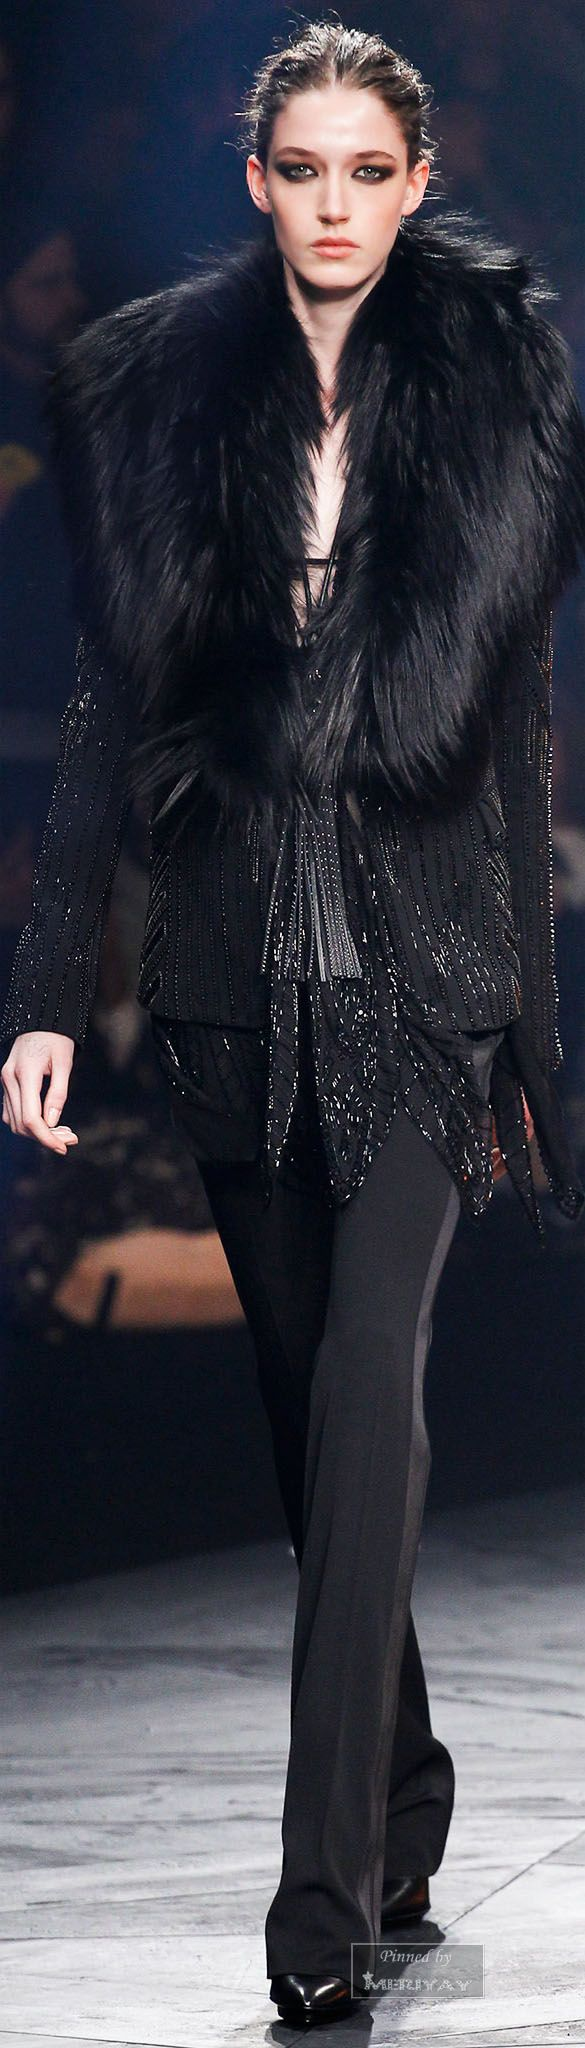 Roberto Cavalli Fall Winter 2014/15